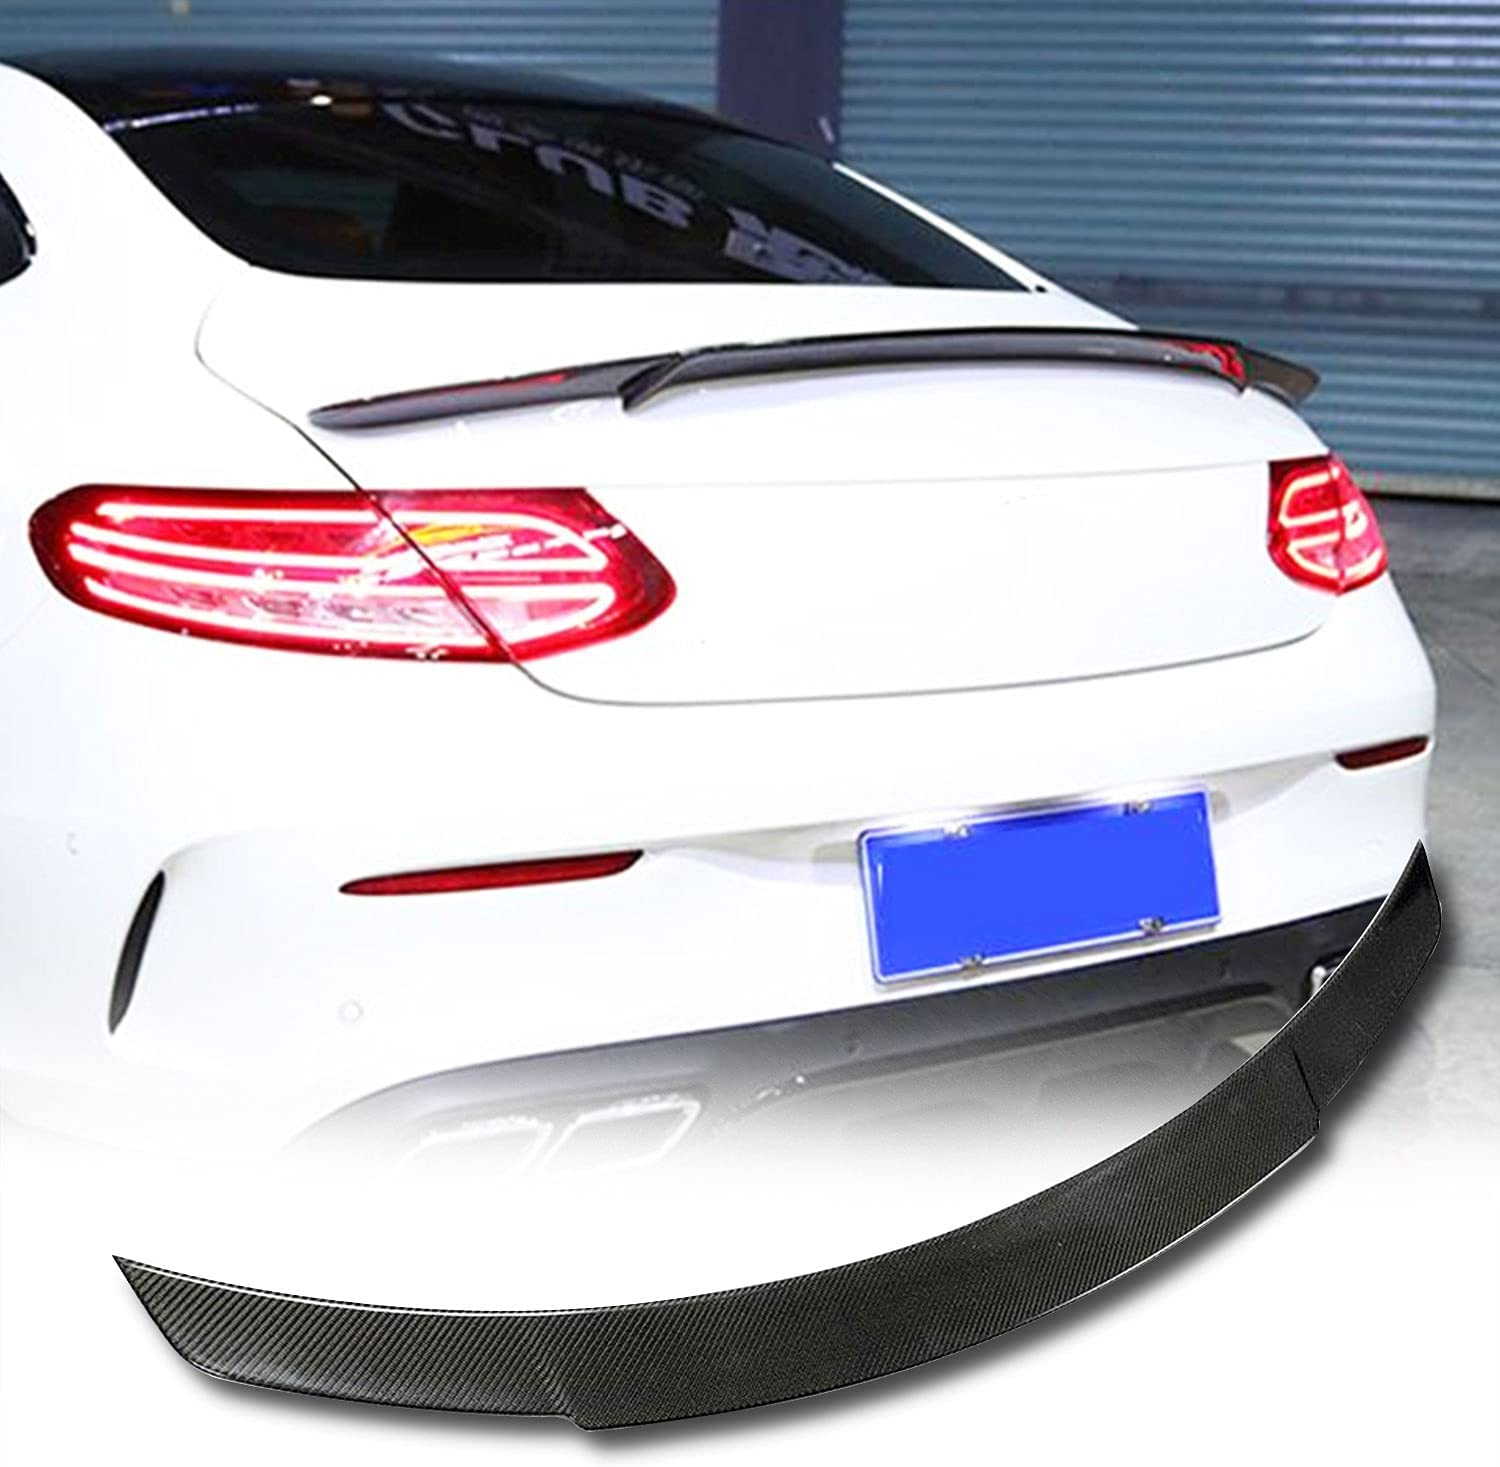 MCARCAR KIT Real Carbon Fiber Trunk for New Free Shipping Be Fits Mercedes Spoiler Max 42% OFF